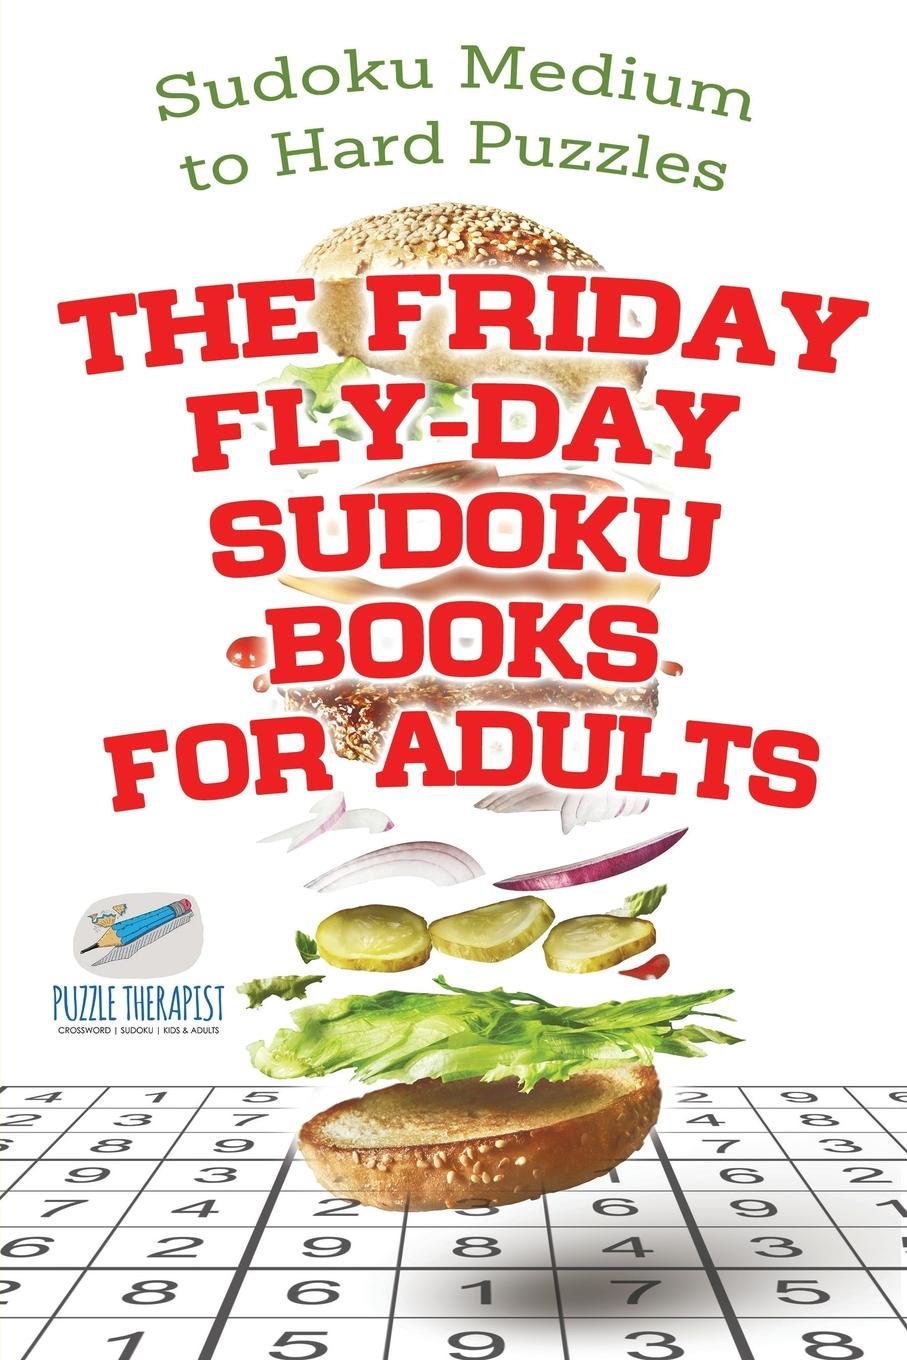 Speedy Publishing The Friday Fly-Day Sudoku Books for Adults . Sudoku Medium to Hard Puzzles puzzle therapist one a day sudoku for the utterly obsessed large print puzzles for adults